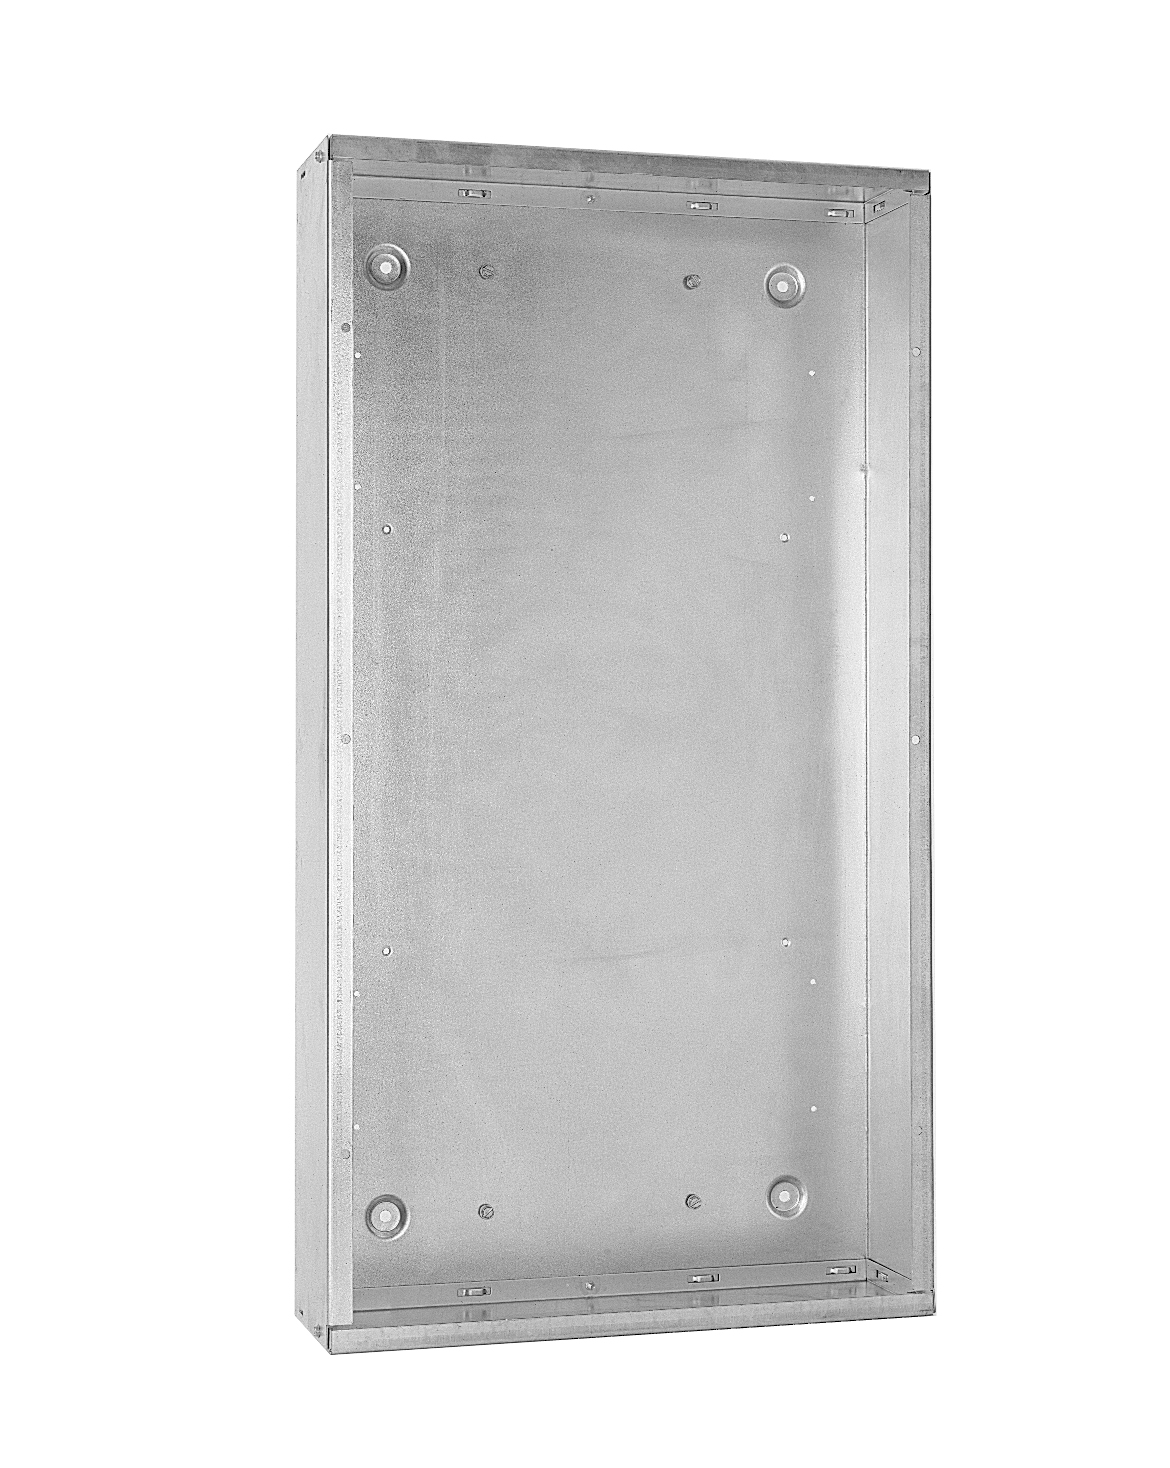 GE,AB43B,General Electric AB43B Panel Board Box, 225 AMP, Enclosure: NEMA 1, Size: 43.500 IN Height X 20.000 IN Width, Consist of: Blank Endwall